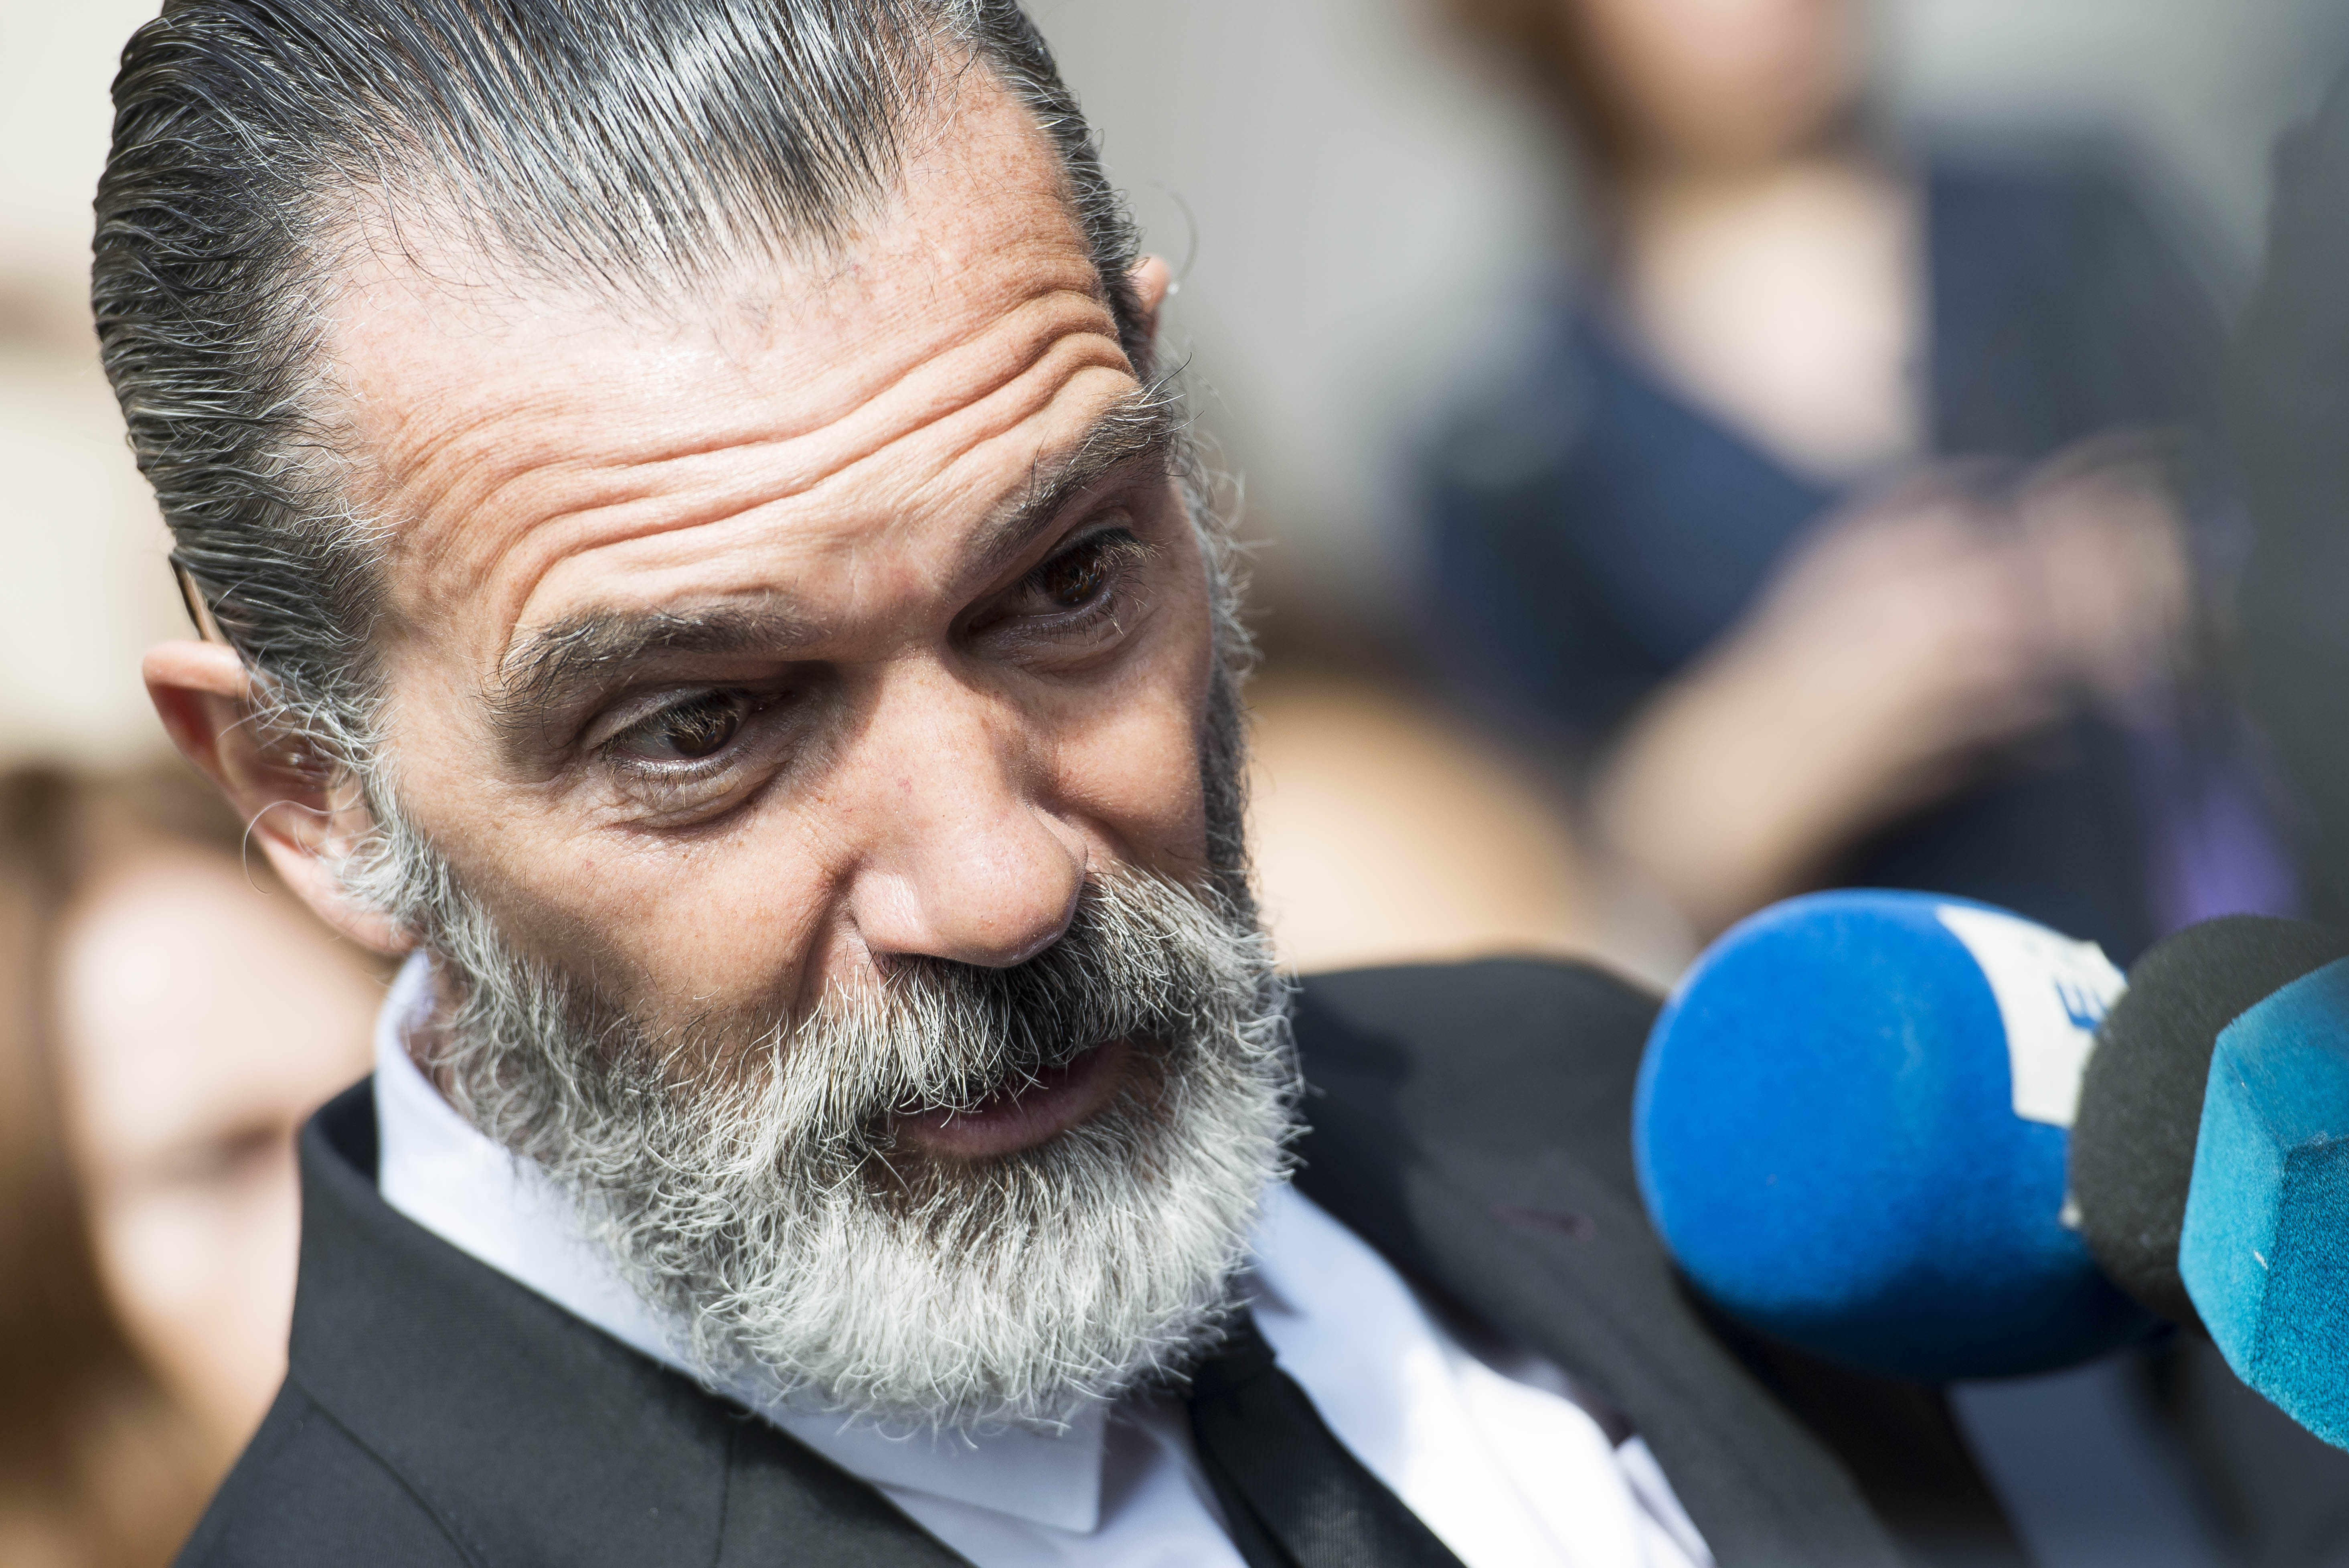 Antonio Banderas Looks Very Different After Shaving Off His Hair And